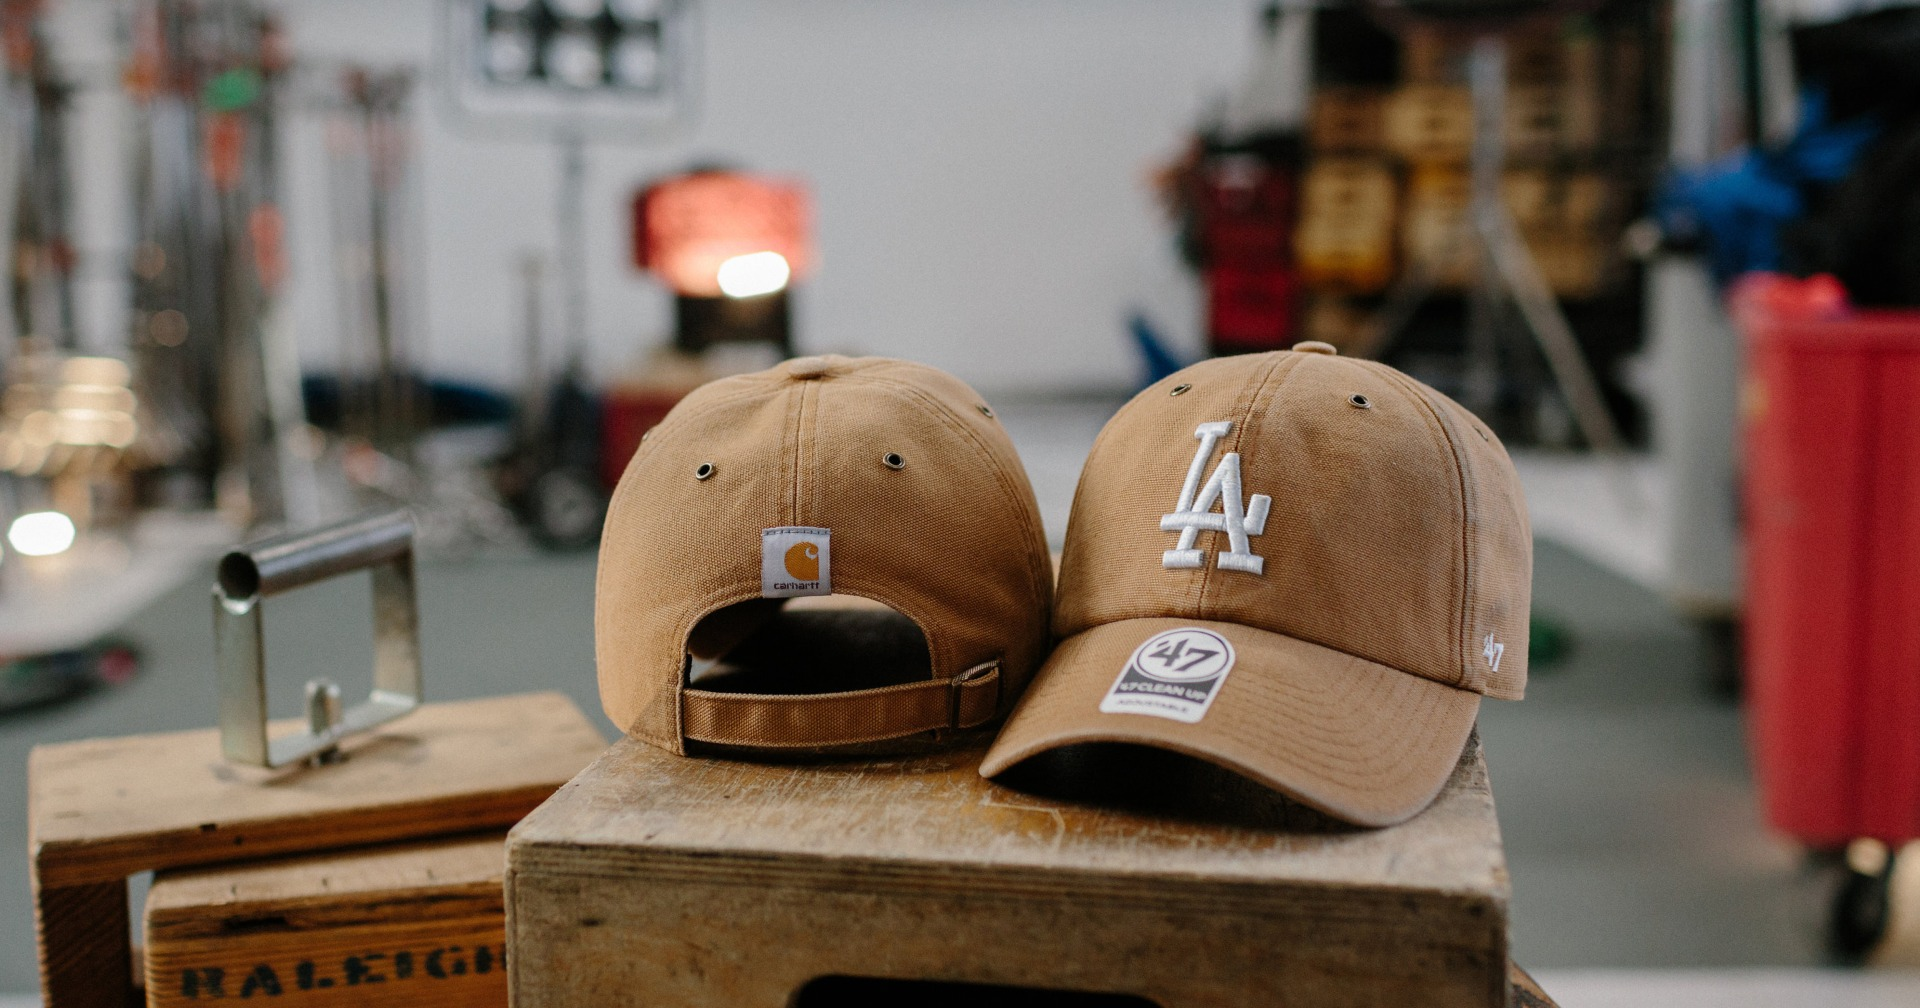 Carhartt x  47 2018 MLB Collection – THE 5TH ELEMENT MAGAZINE 63f0600d818